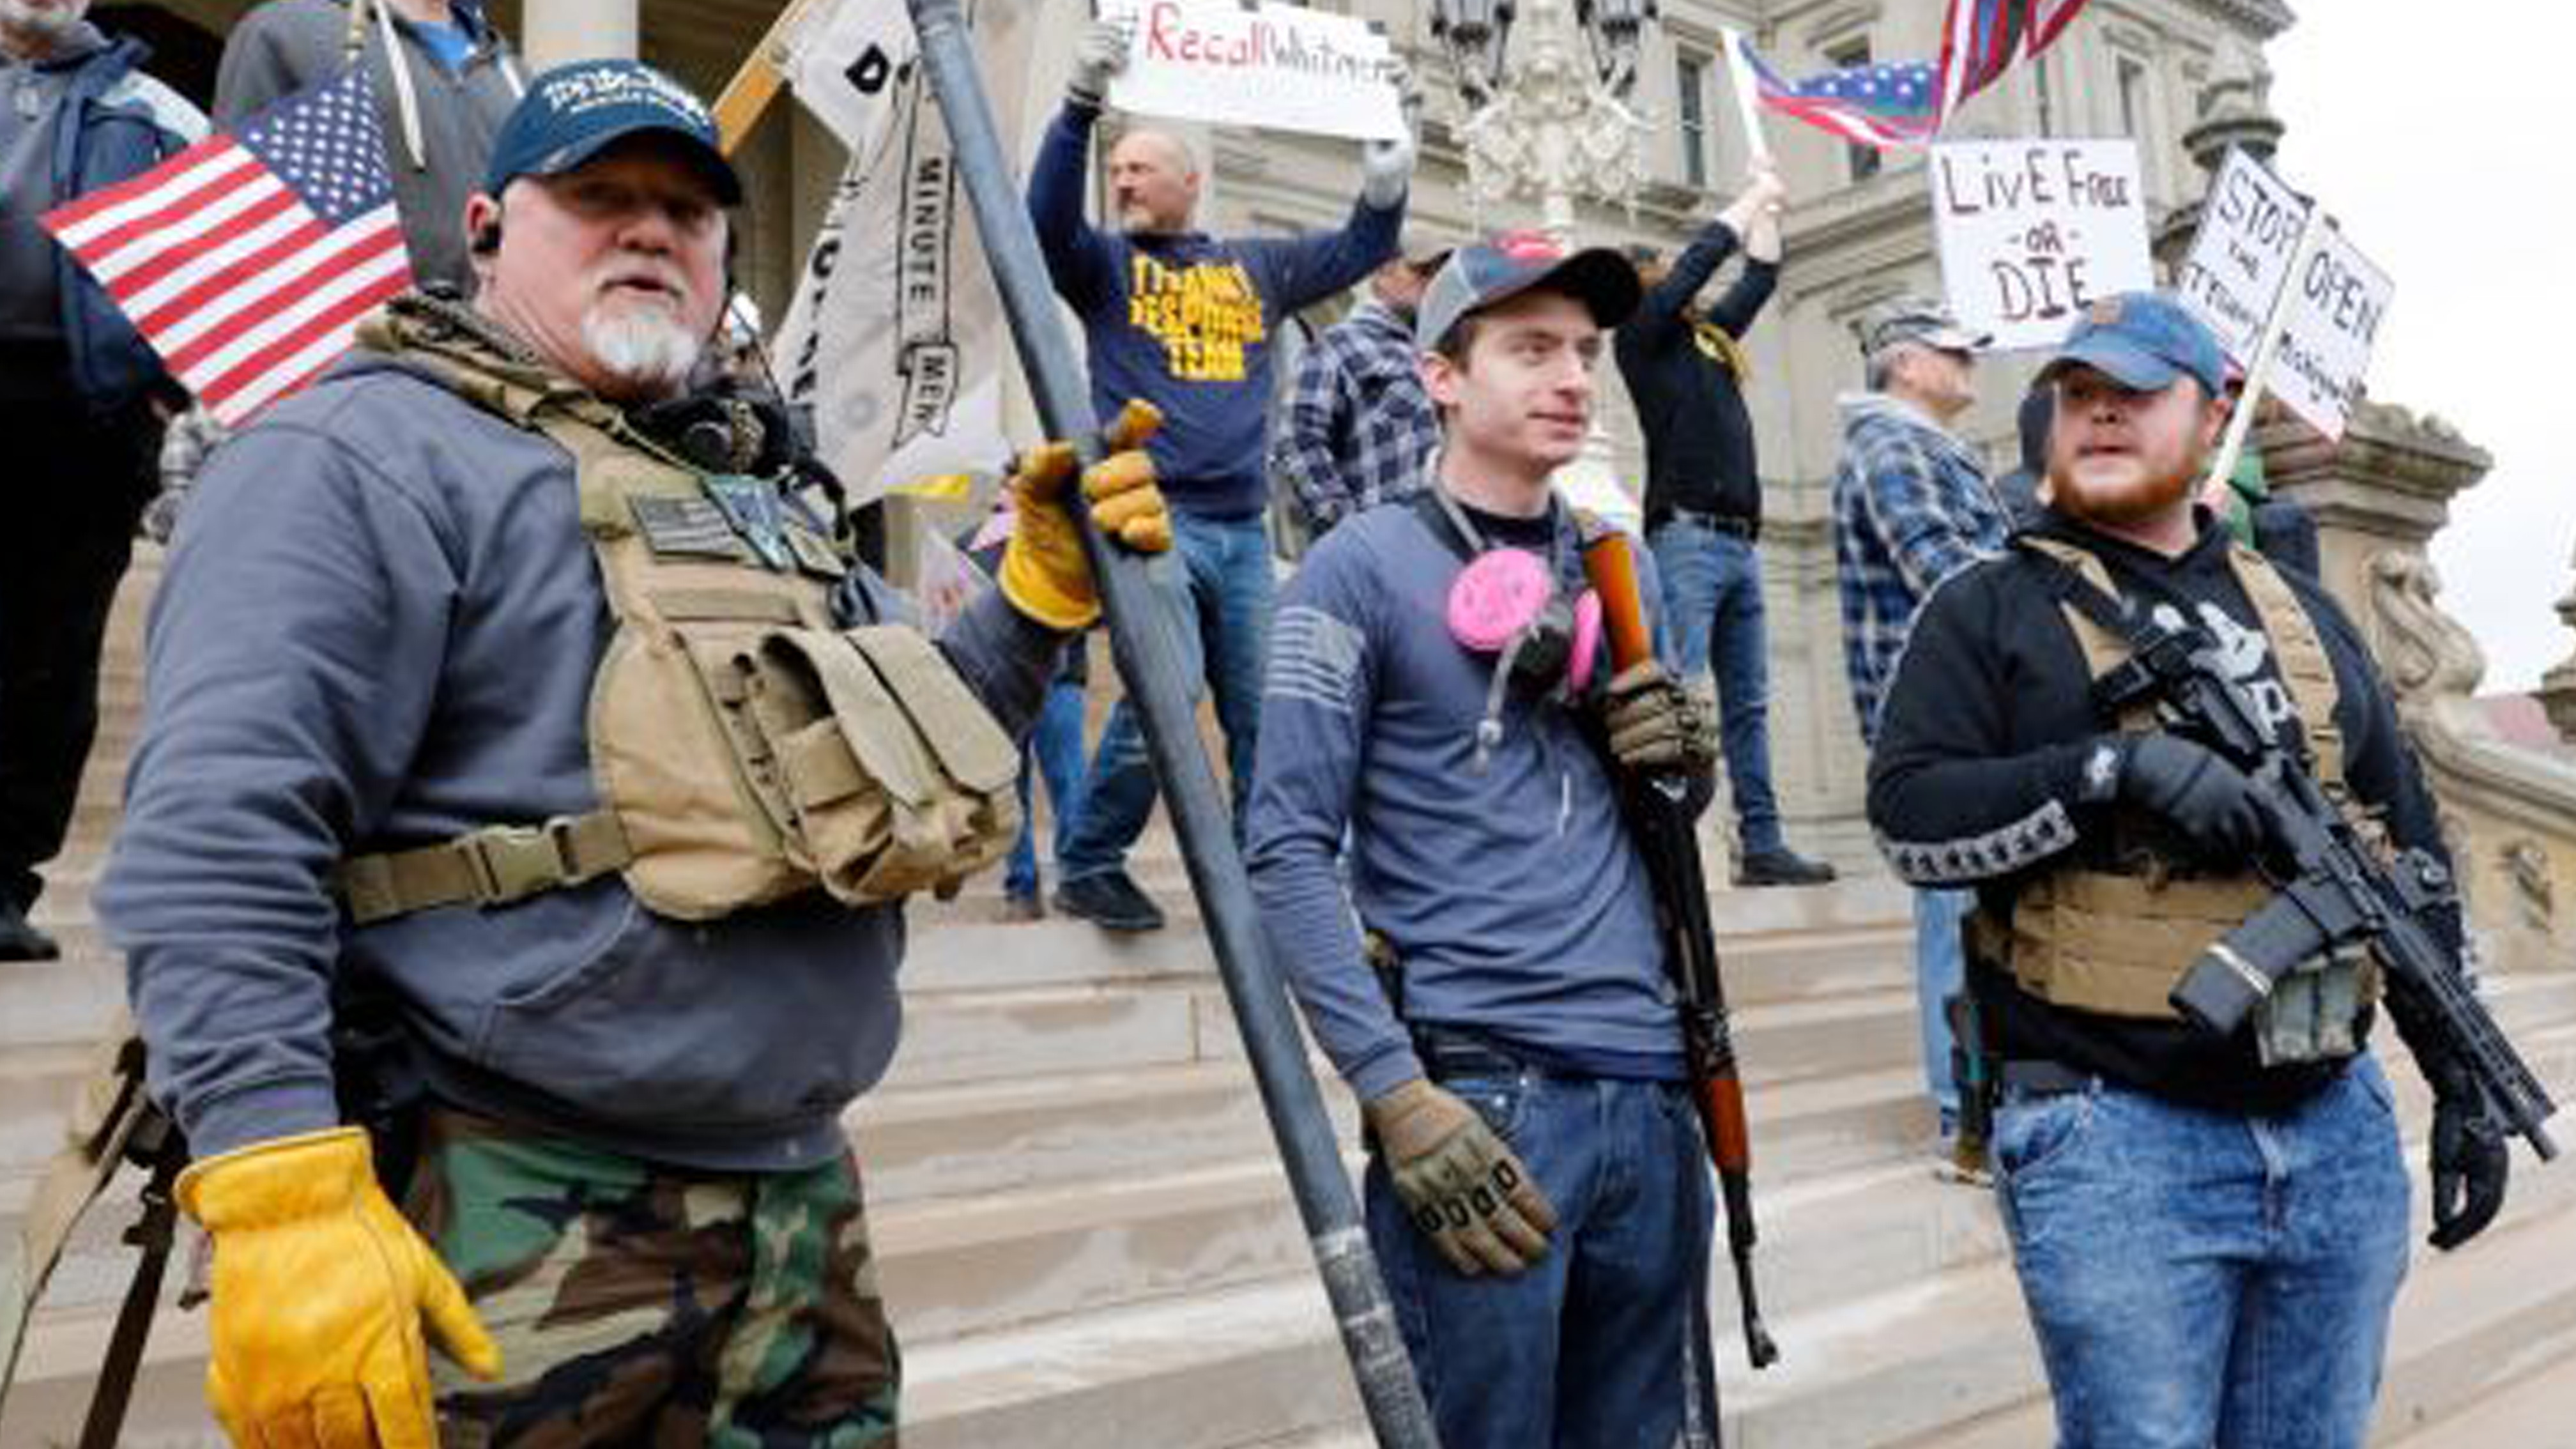 Michigan Commission Ban Open Carry of Firearms Inside State Capitol